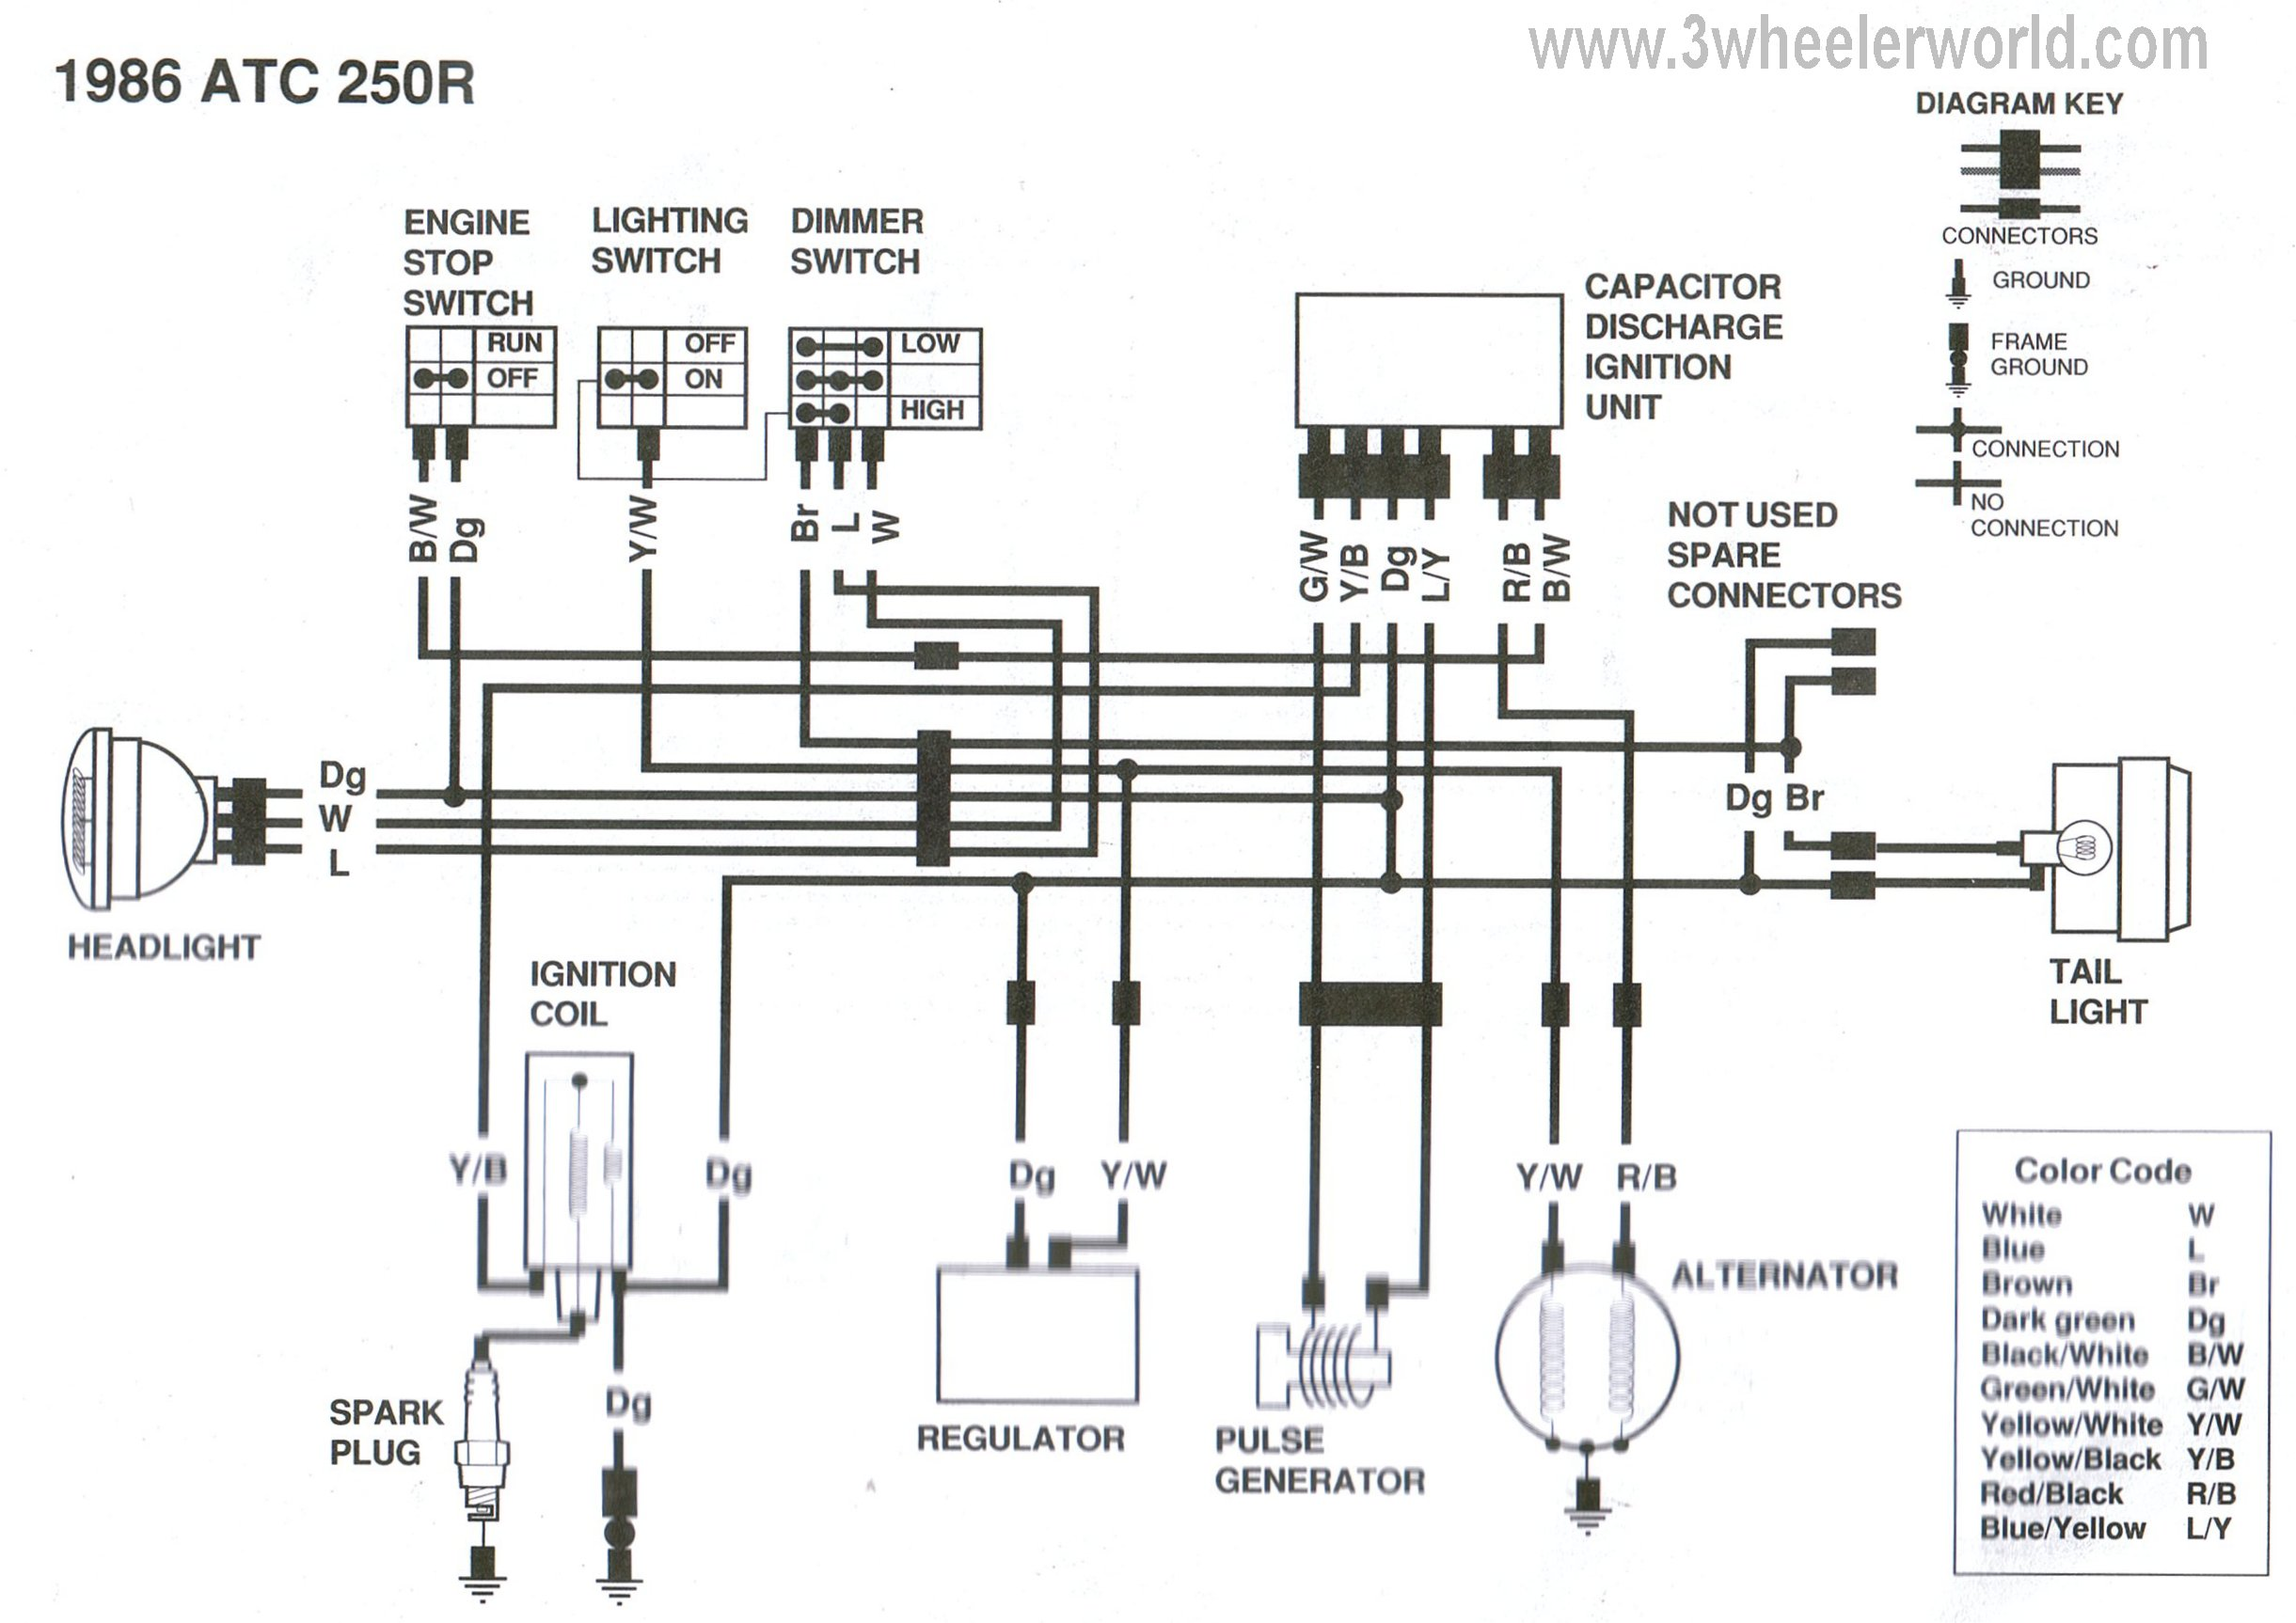 ATC250Rx86 3 wheeler world tech help honda wiring diagrams honda recon 250 wiring diagram at suagrazia.org